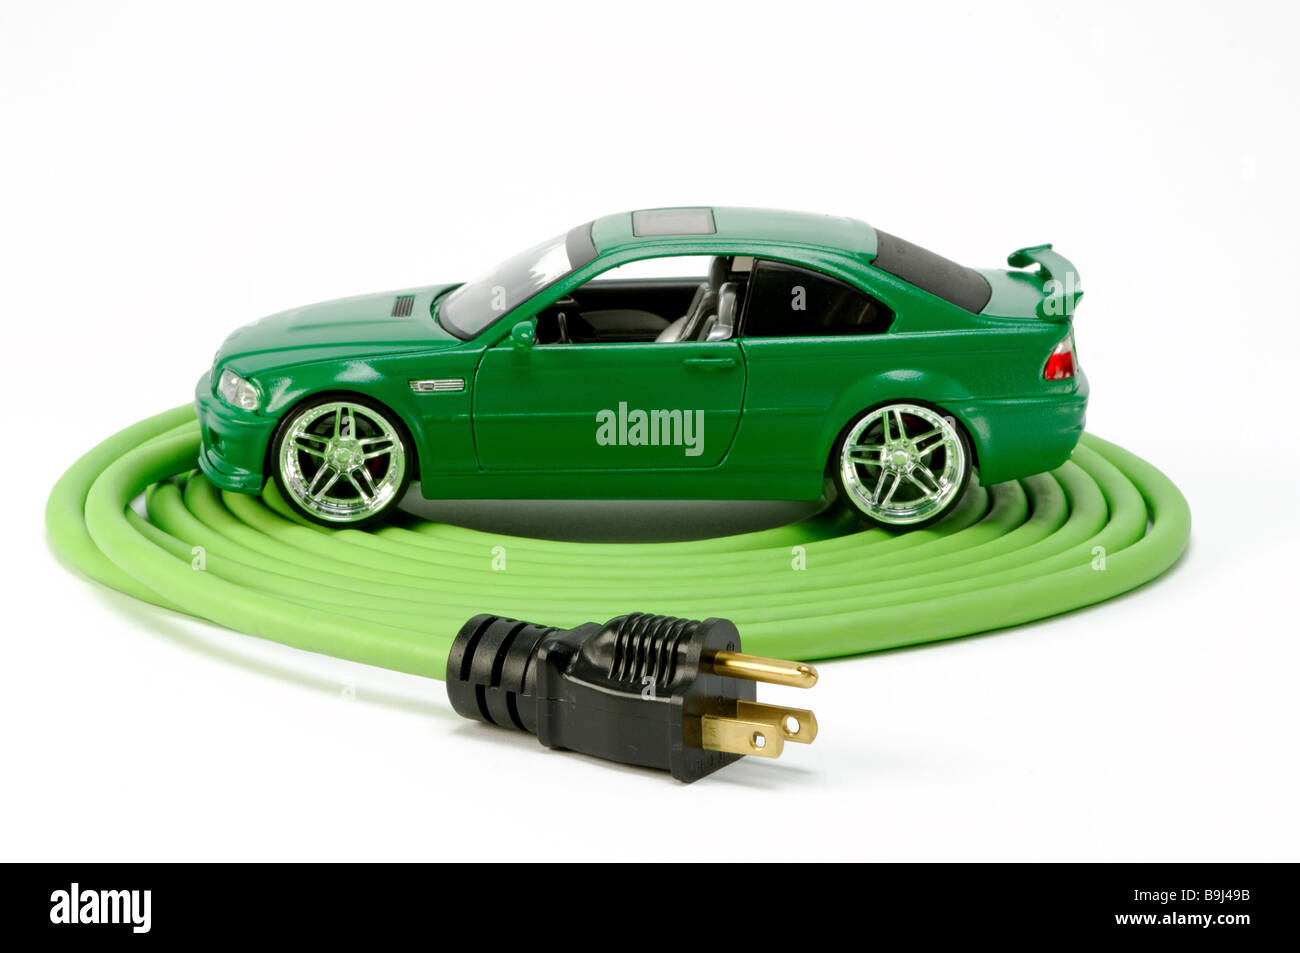 A green automobile car on a green coiled electrical extension power cord with one plug - Stock Image